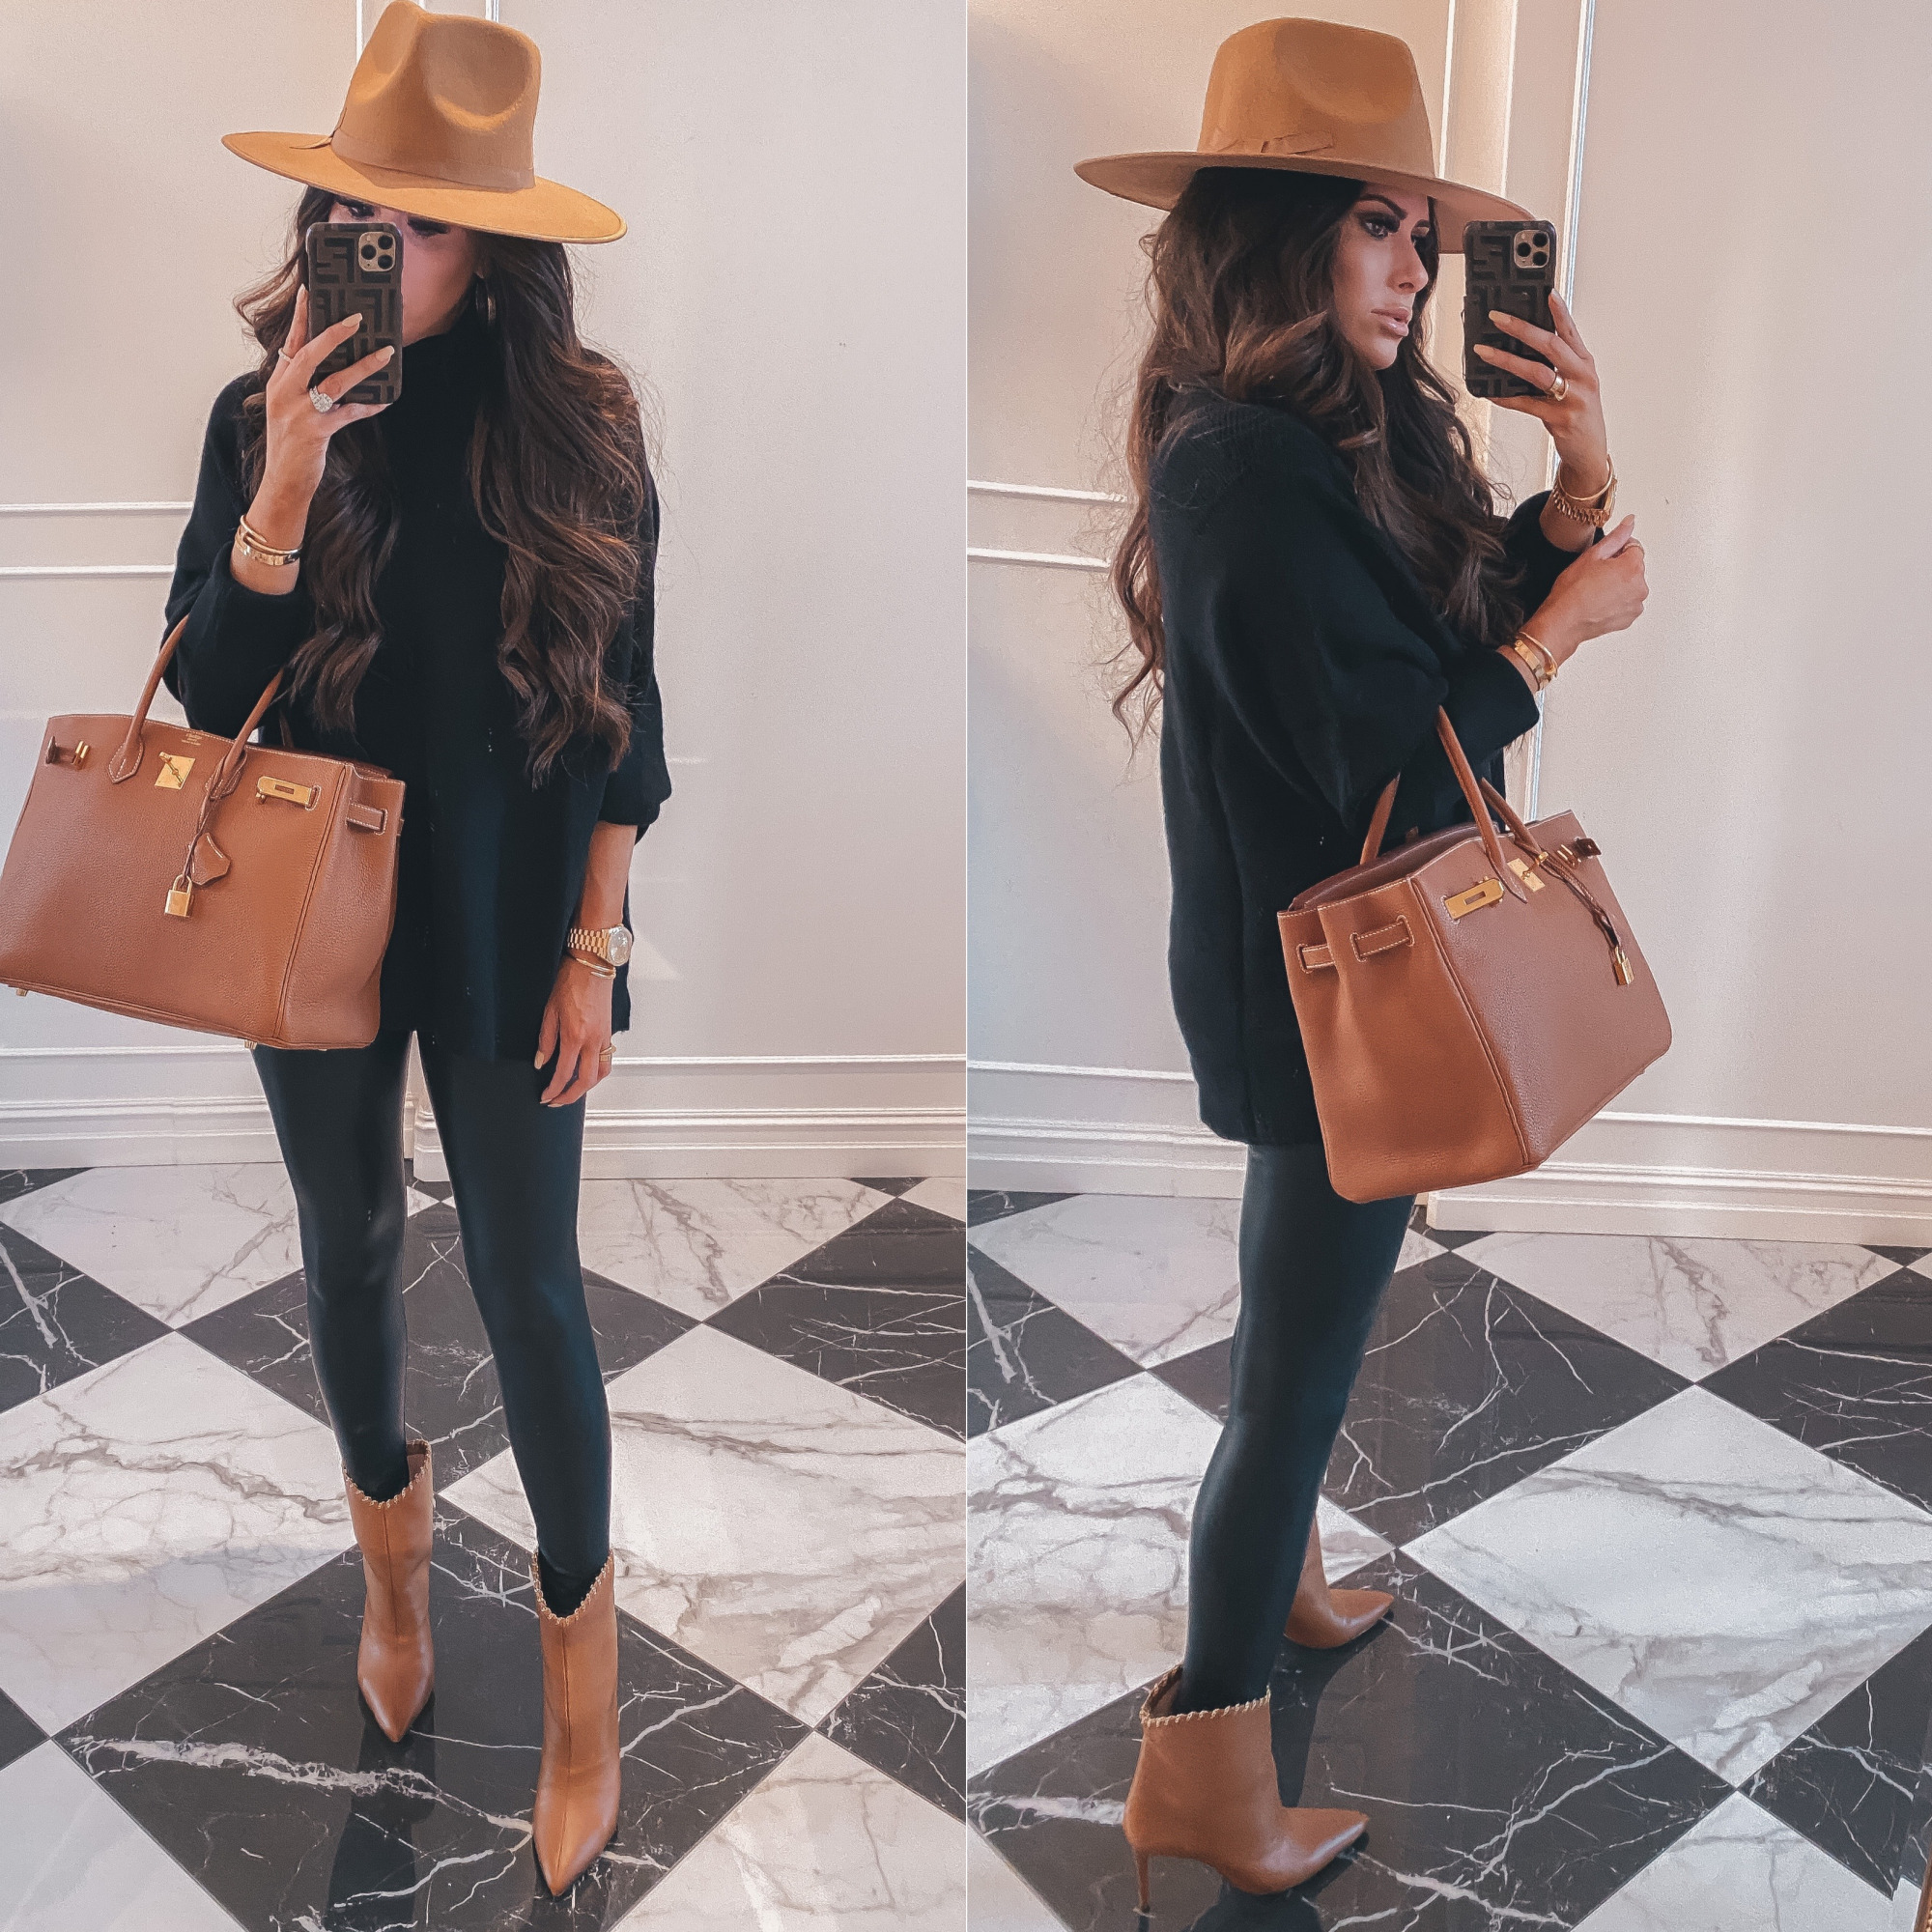 Thanksgiving Outfits by popular US fashion blog, The Sweetest Thing: image of Emily Gemma wearing a oversized black mock neck sweater, Commando black leather leggings, Schutz Boots, Cartier rings and bracelets, Bracha necklace, The Styled Collection earrings, tan felt fedora, and holding a Hermes Birkin bag.